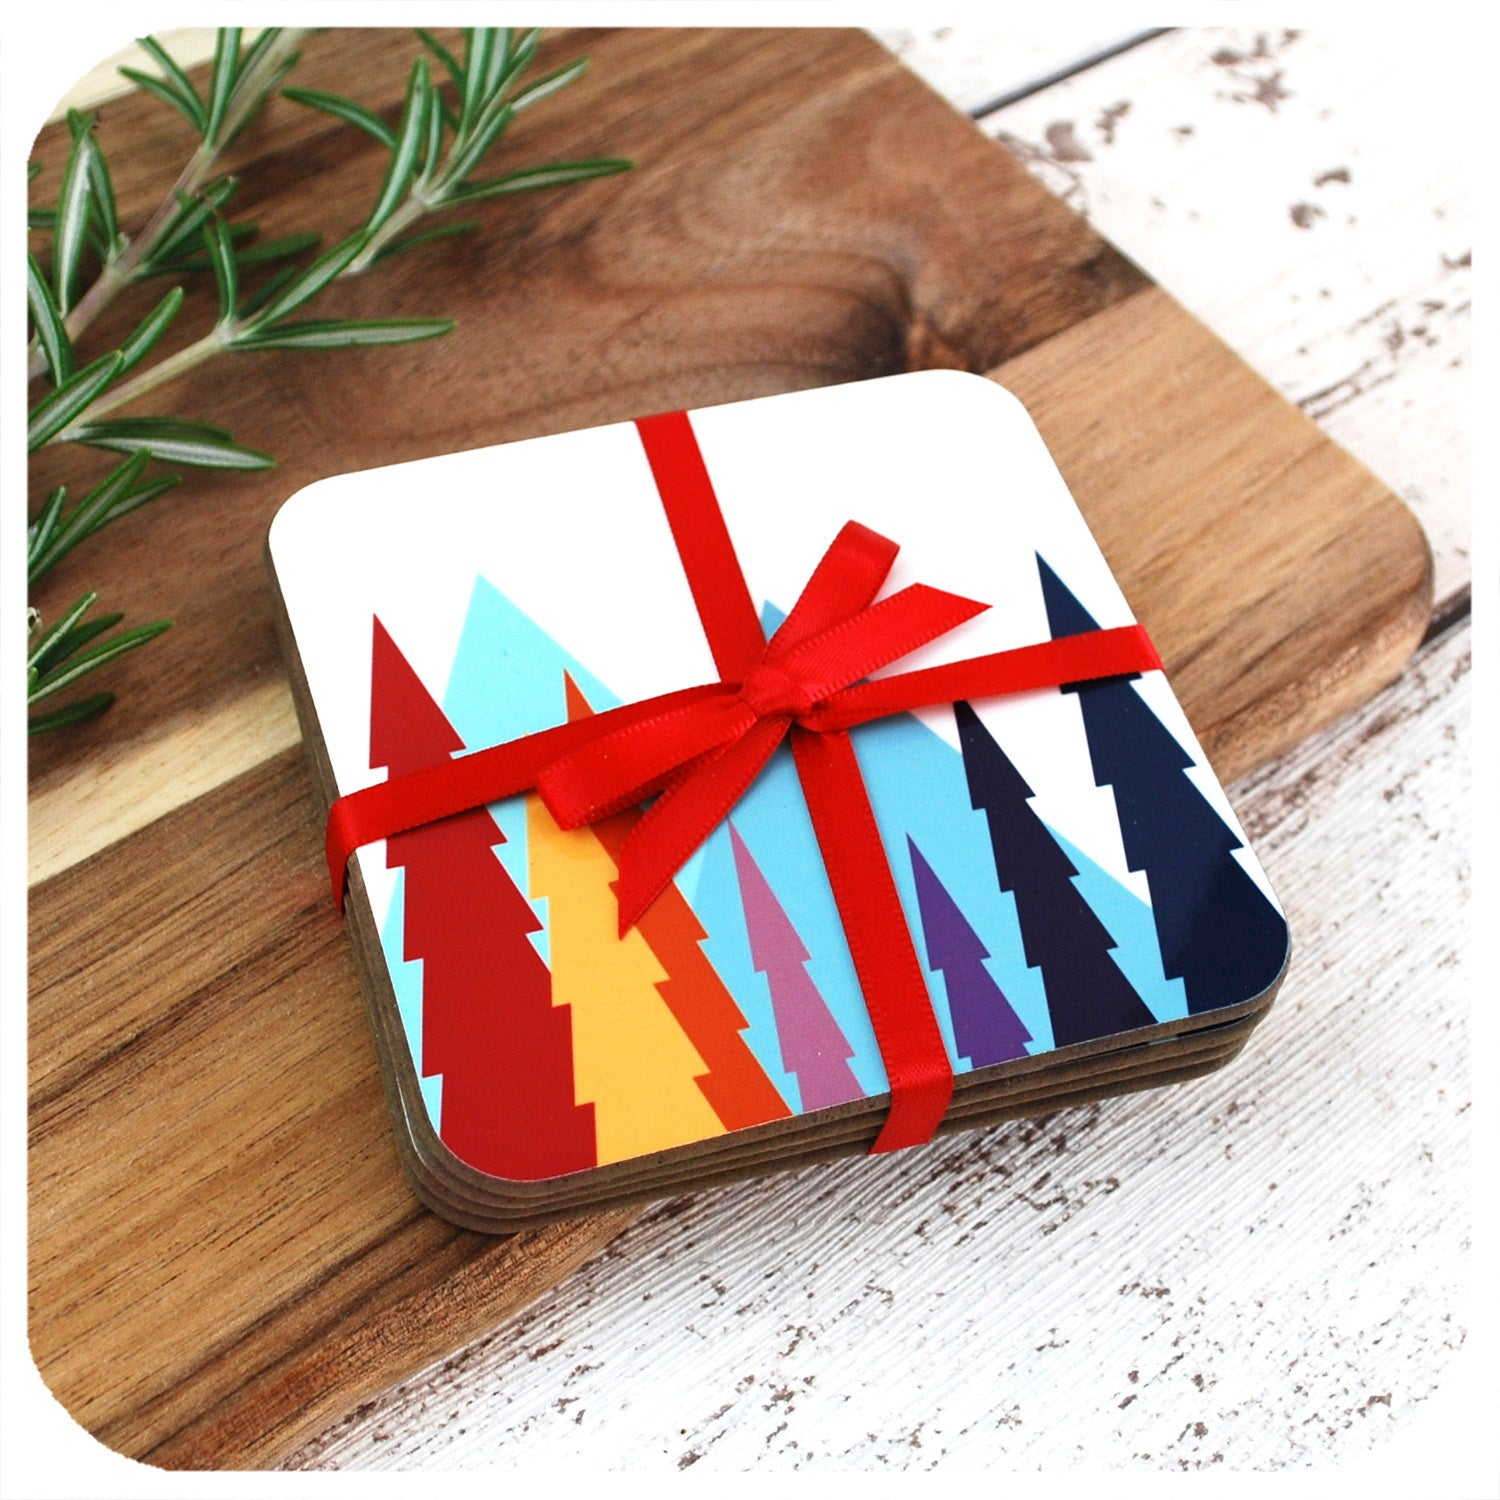 Nordic Trees Coasters, tied in red ribbon, gift wrapped as standard | The Inkabilly Emporium